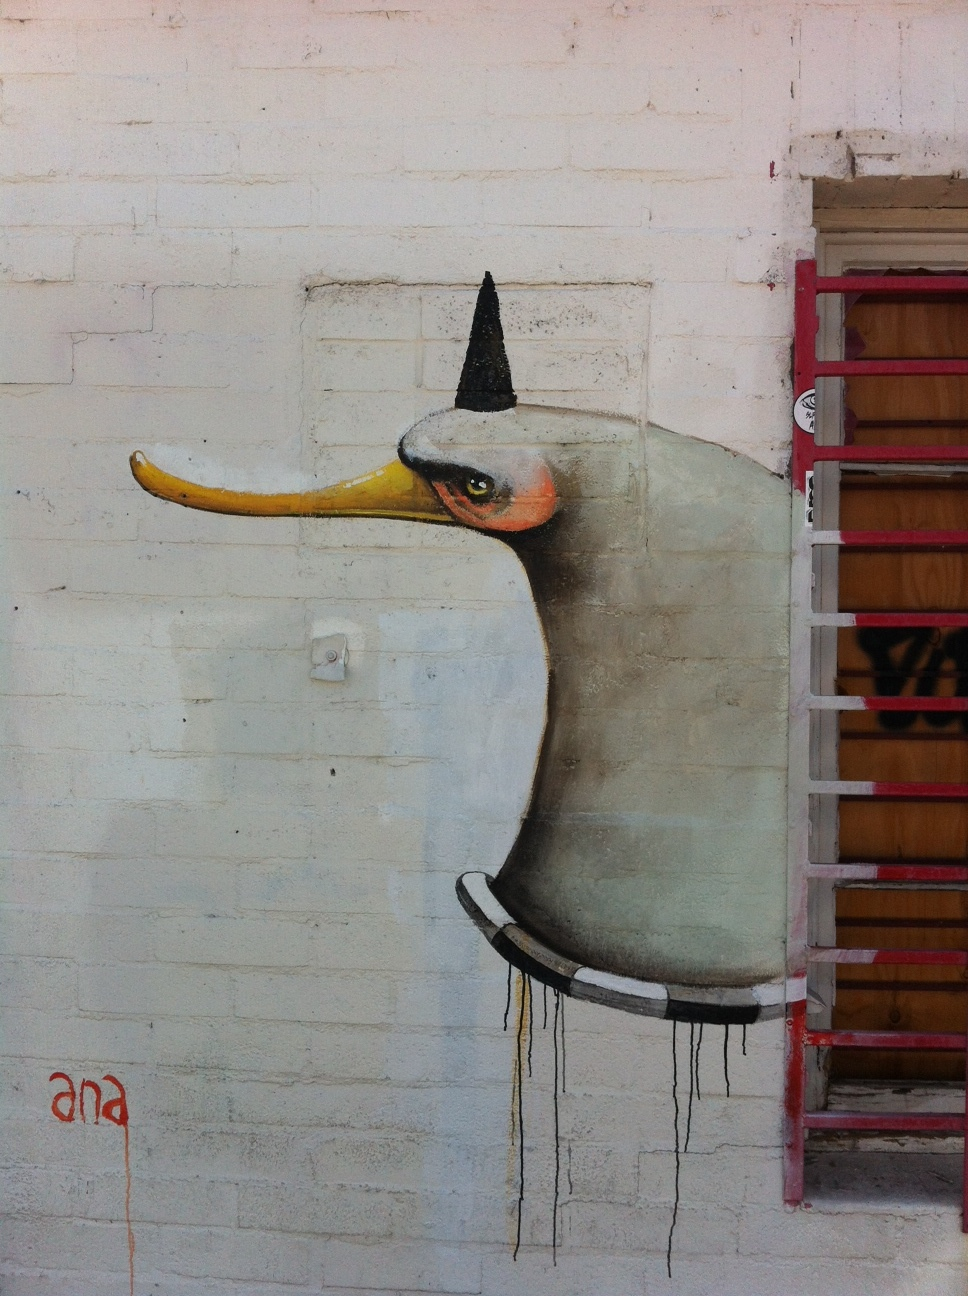 This surrealist artwork was found on a warehouse wall in Vegas' Arts District.